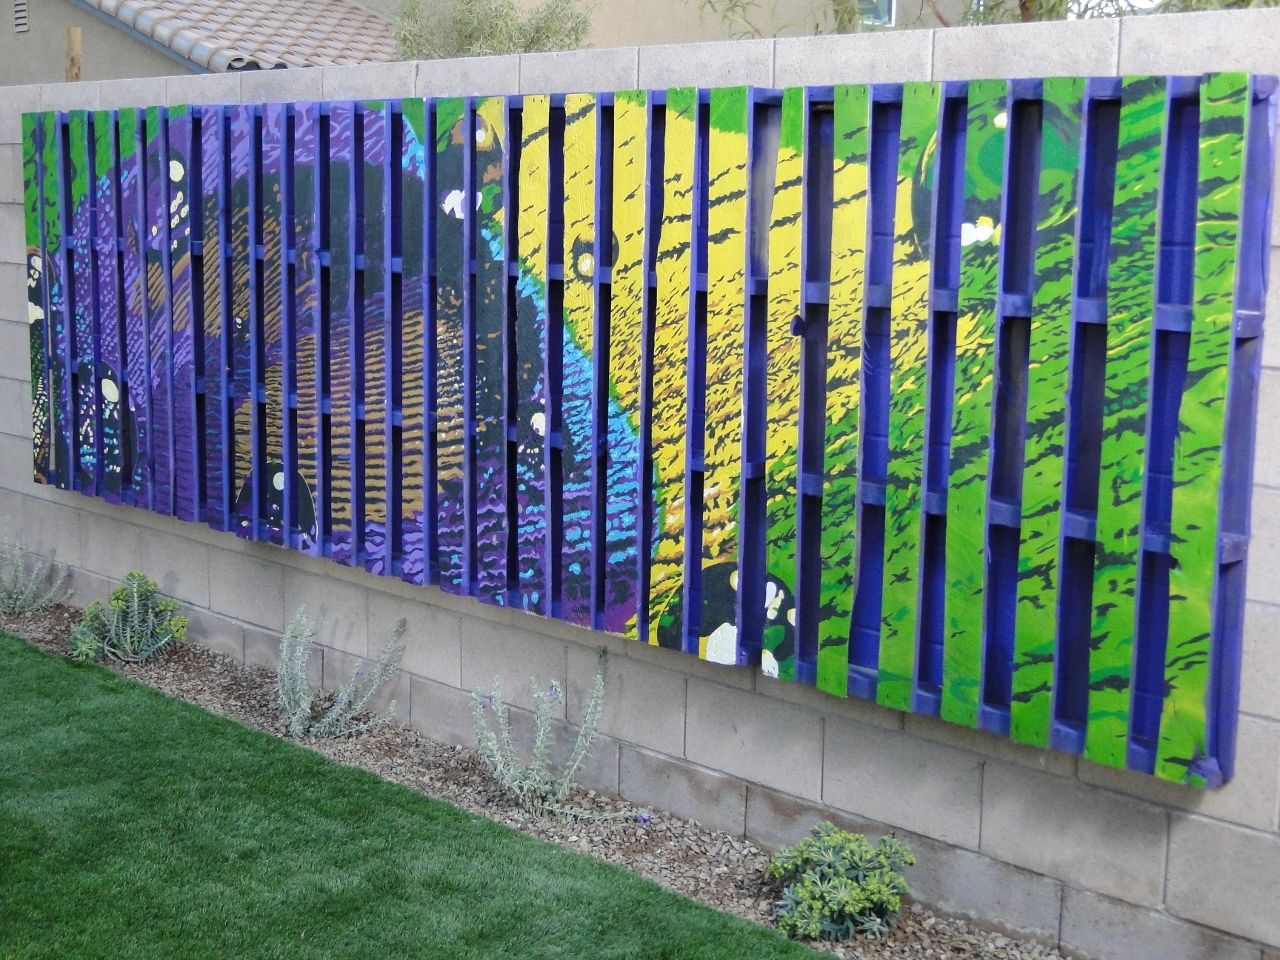 Diy garden wall art -  Peacock Pallet Mural By Imaginarium Design For Yard Crashers Diy Hgtv Network Www